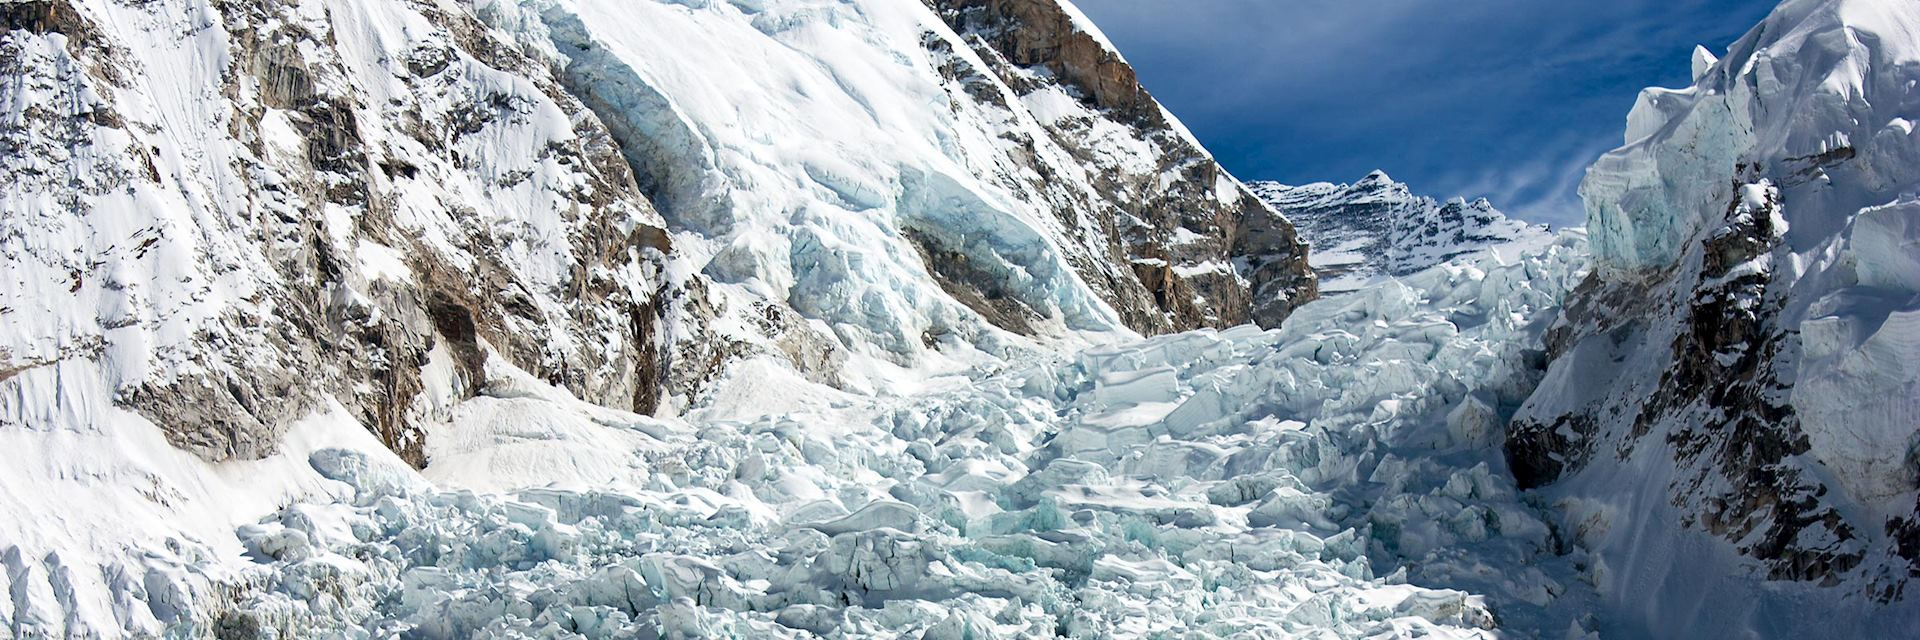 Khumbu Icefall, Everest Base Camp, Nepal